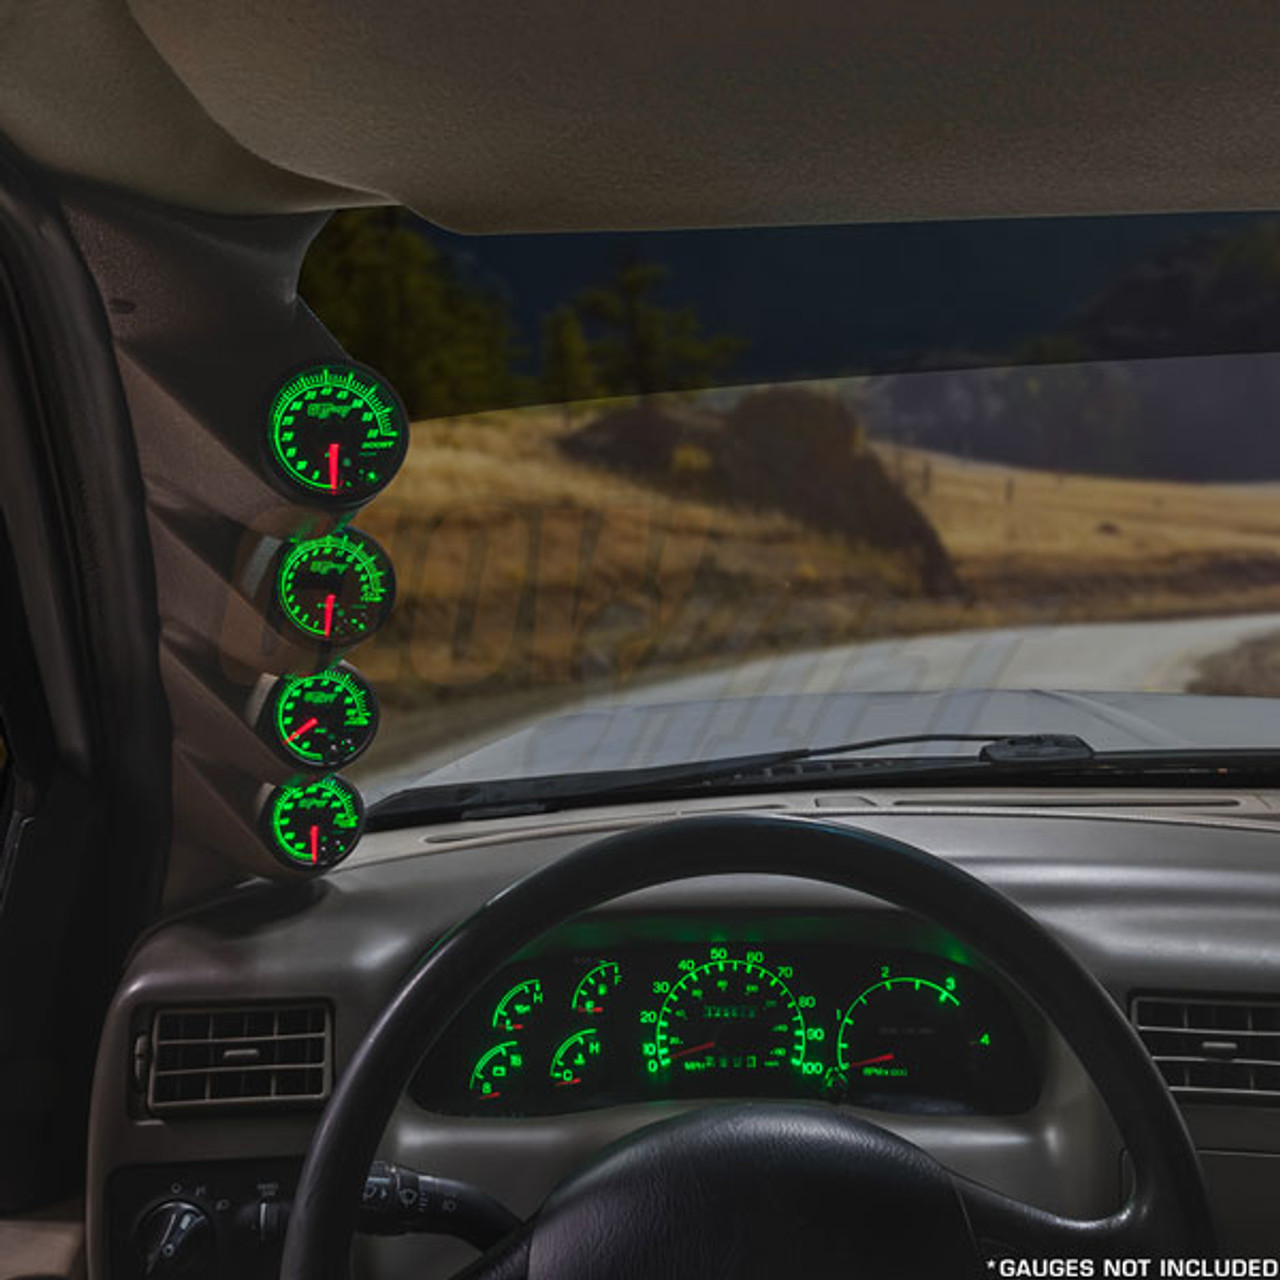 Gauges to Truck A-Pillar 52mm ABS Plastic 2-1//16 Factory Color Matched 3 GlowShift Gray Triple Pillar Gauge Pod for 1999-2007 Ford Super Duty F-250 F-350 Power Stroke UV Protected Mounts